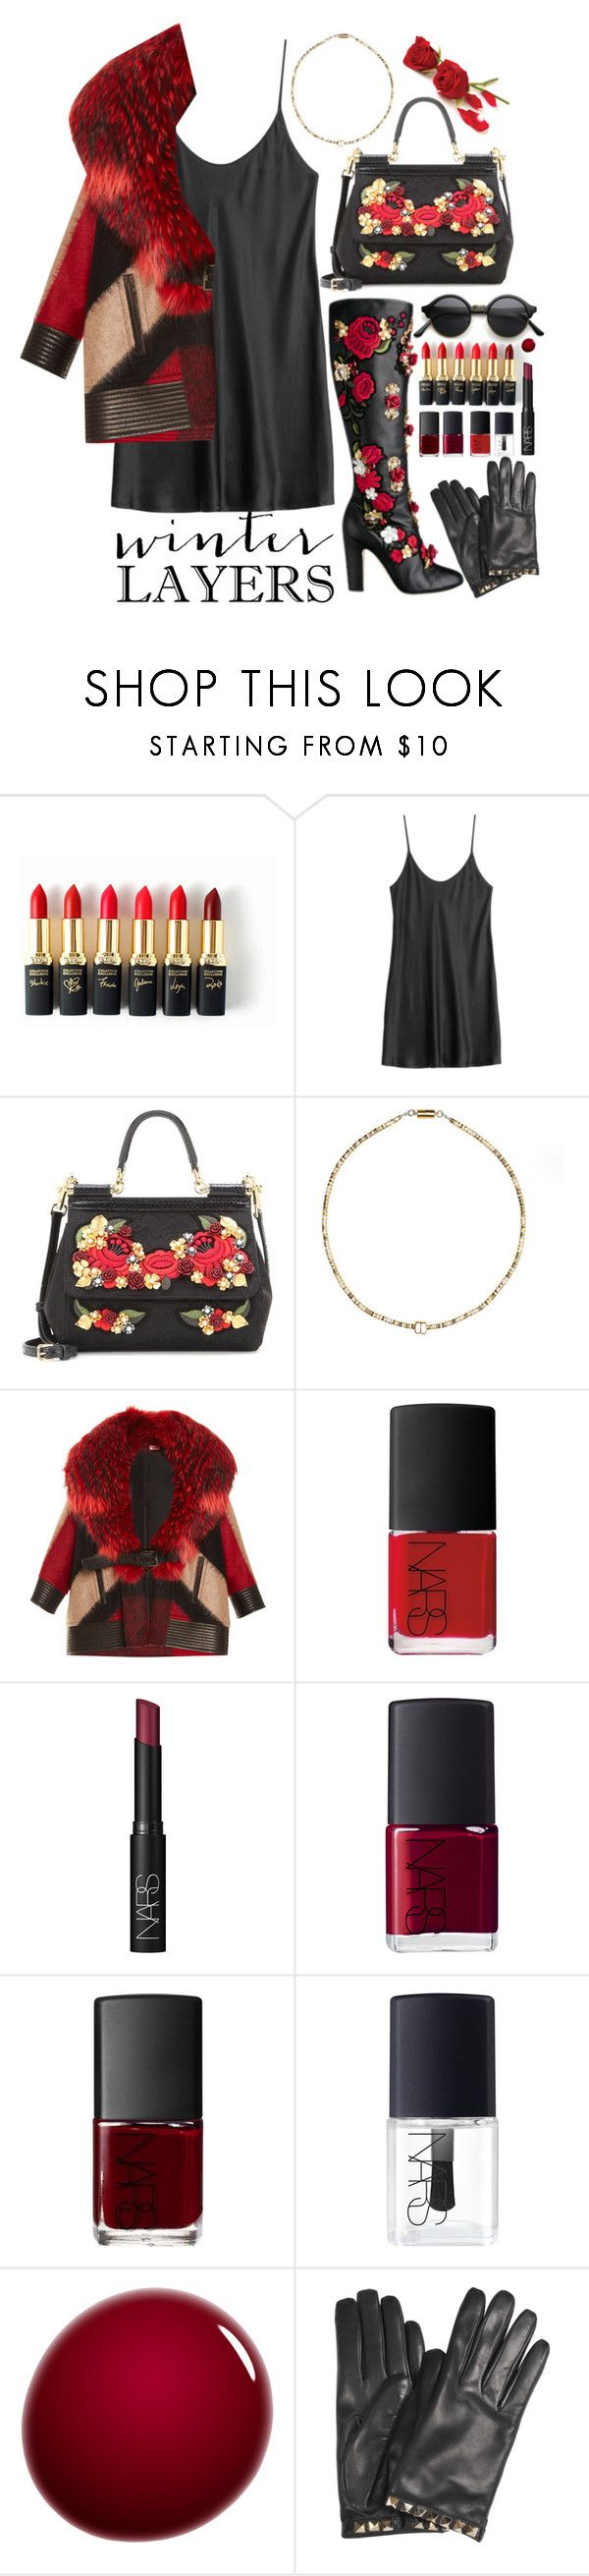 """In Repair ★★ John Mayer"" by devil-in-a-new-dress ❤ liked on Polyvore featuring L'Oréal Paris, La Perla, Dolce&Gabbana, Alice Menter, J. Mendel, NARS Cosmetics, Valentino, women's clothing, women and female"